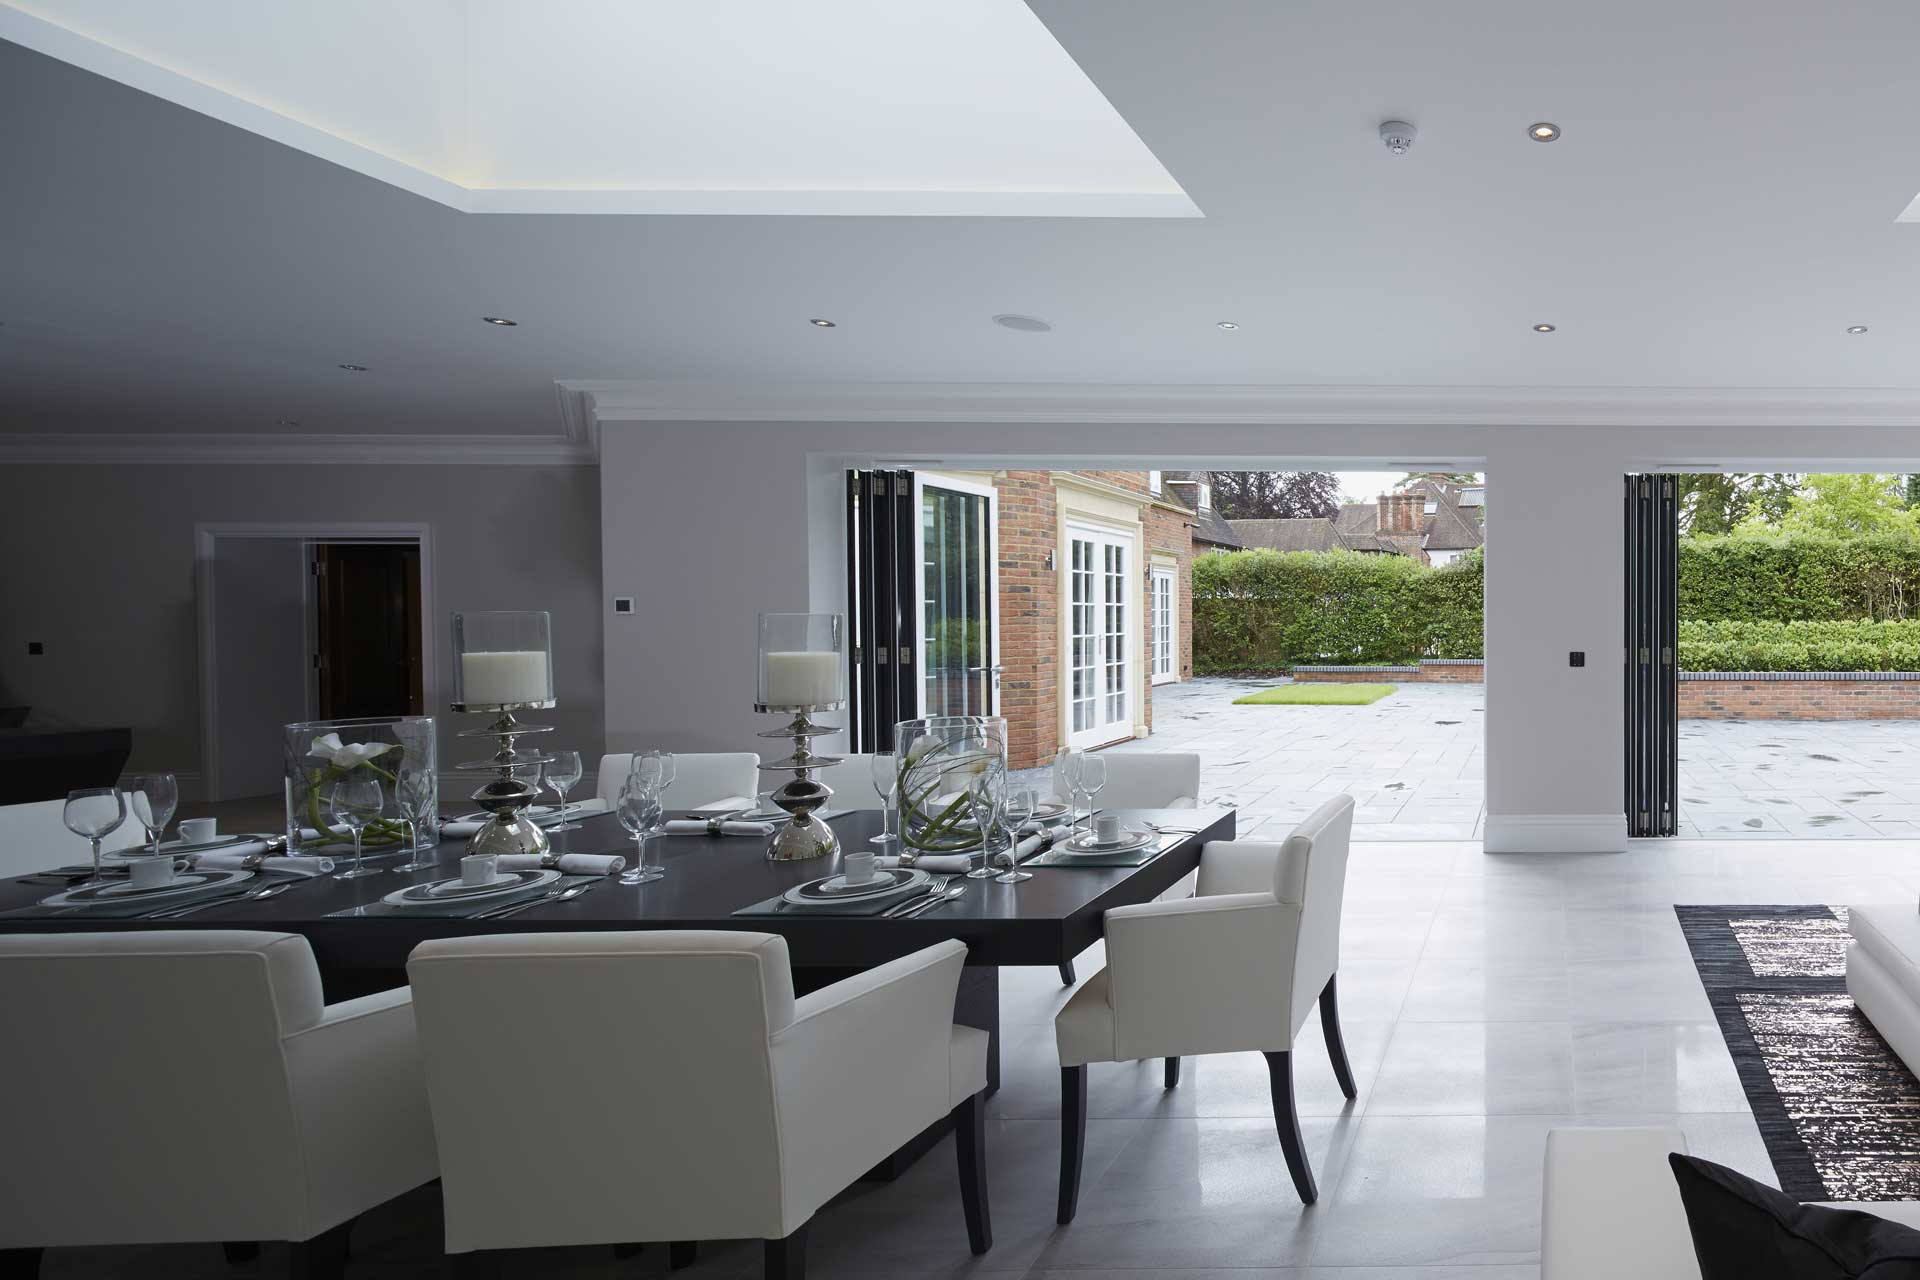 bifolding doors cost calculator darlington